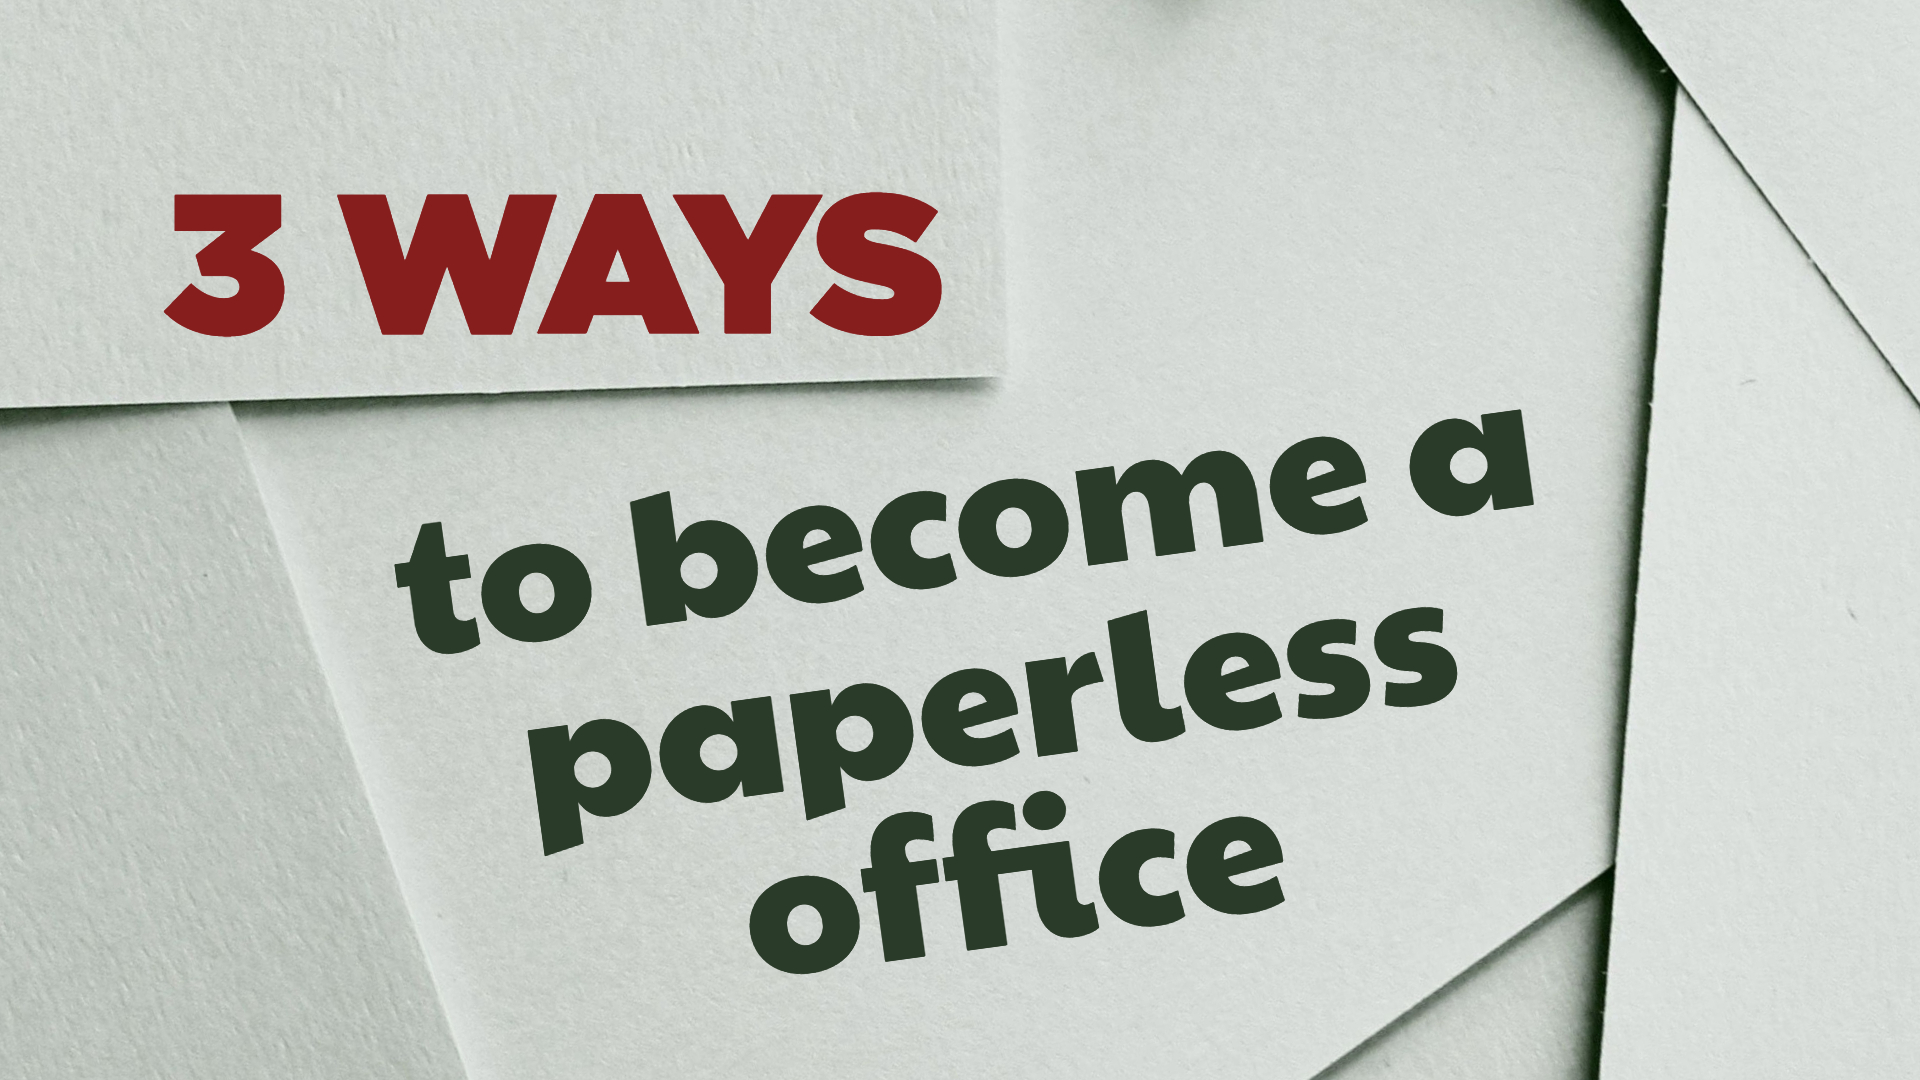 3 Ways to become Paperless Office